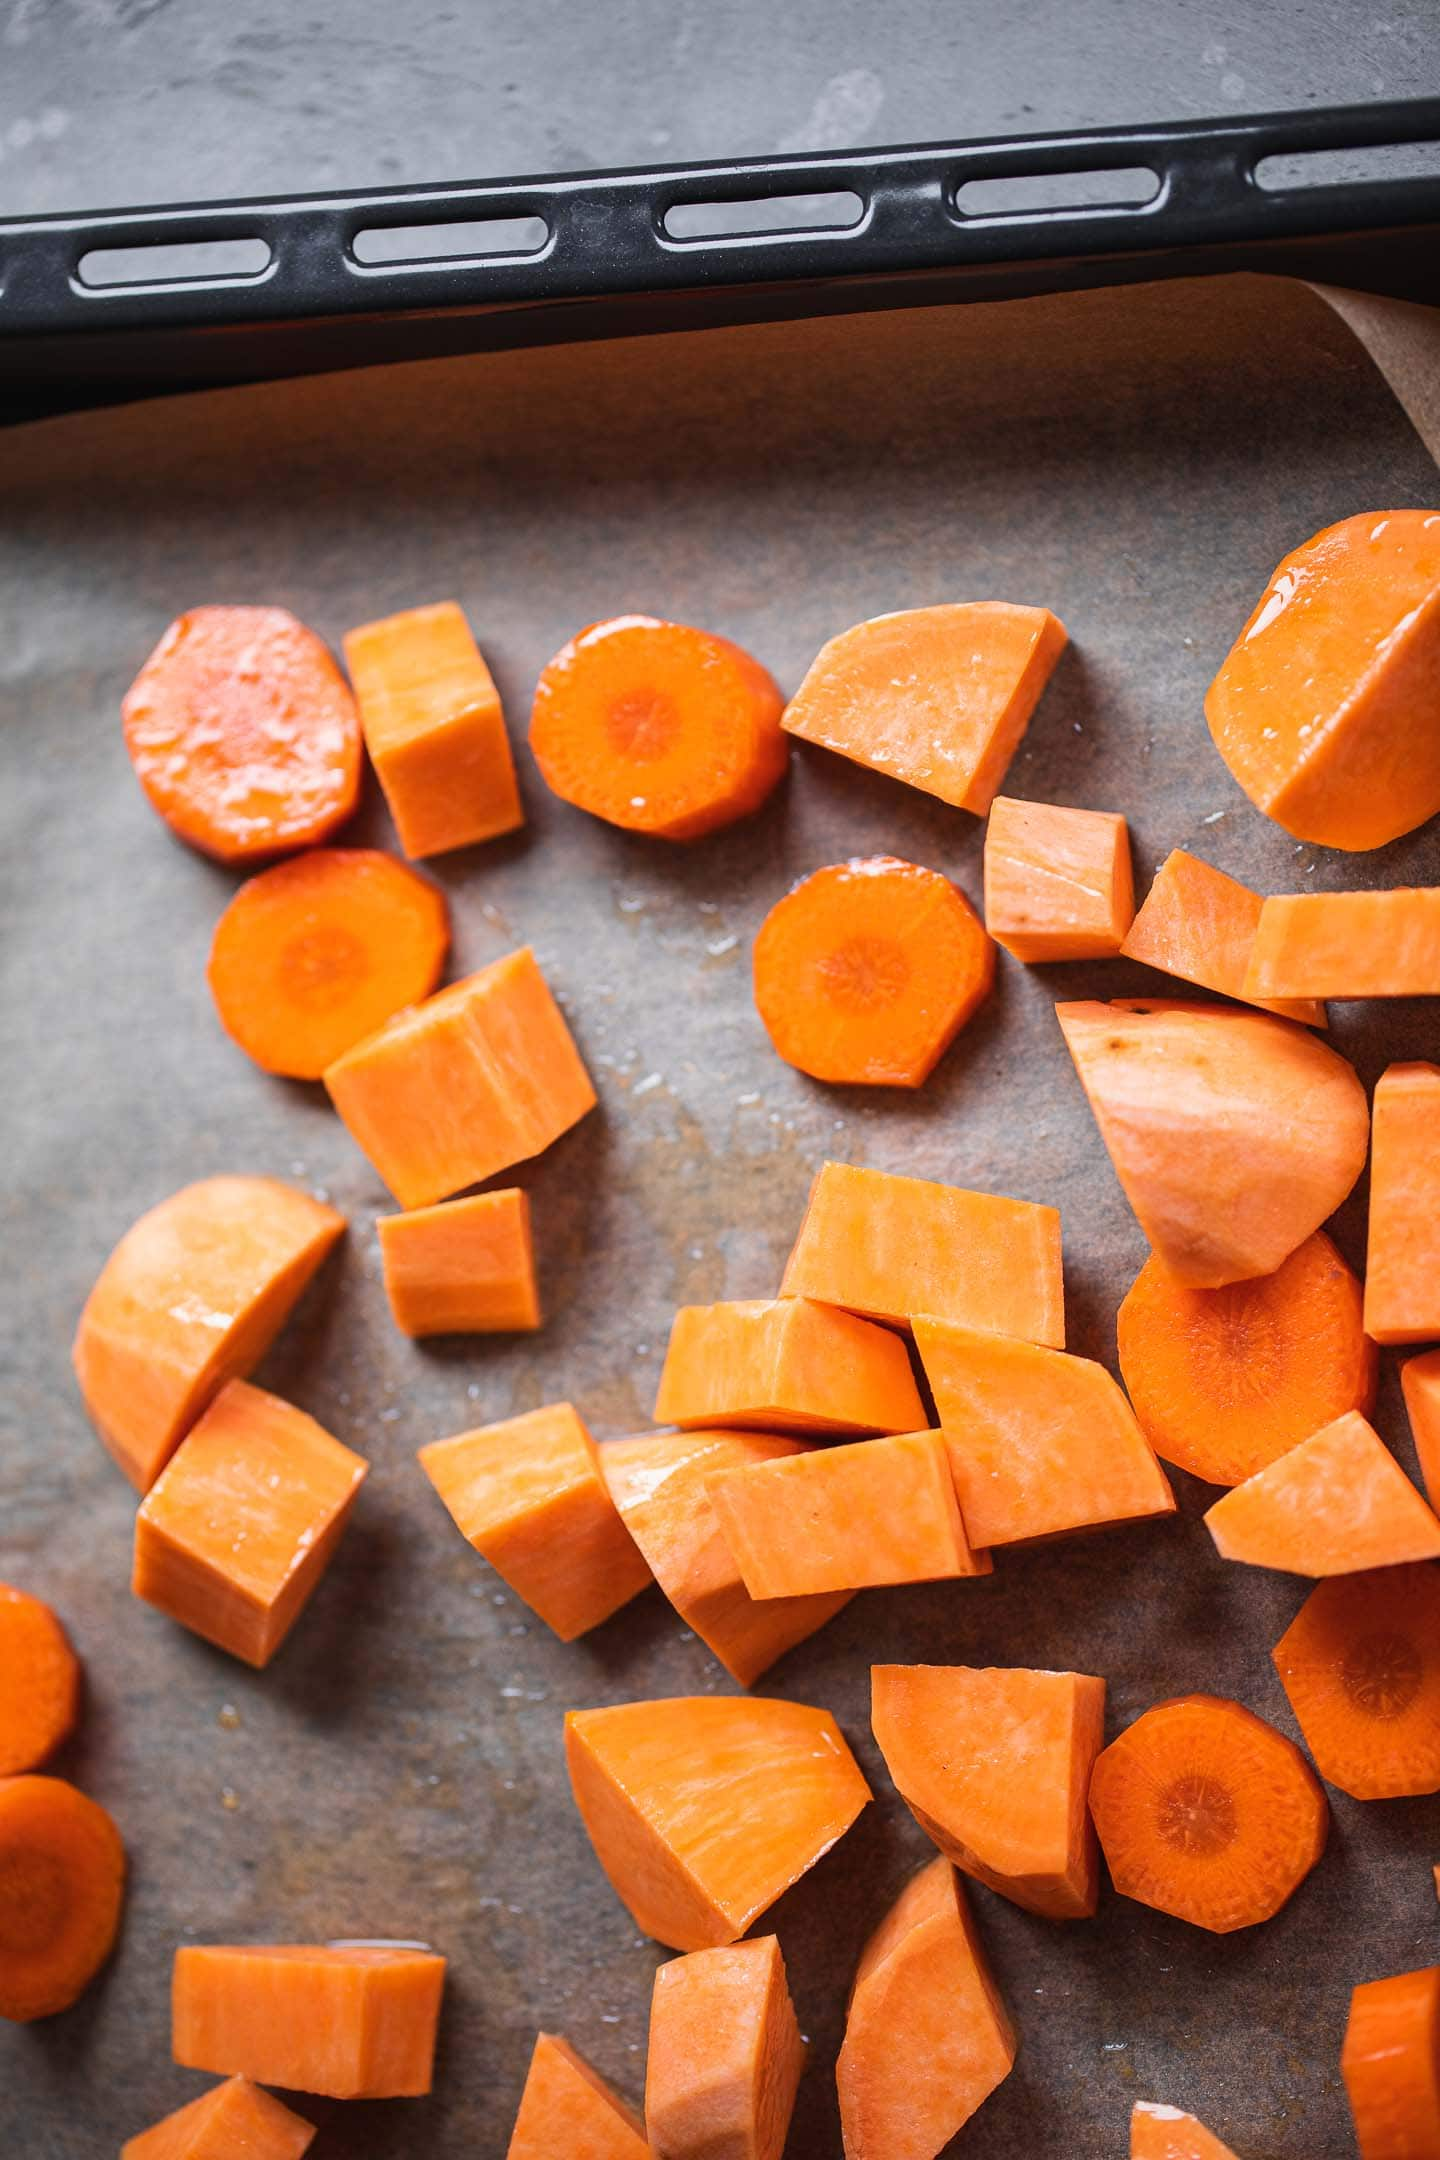 Carrot and sweet potato on a baking tray